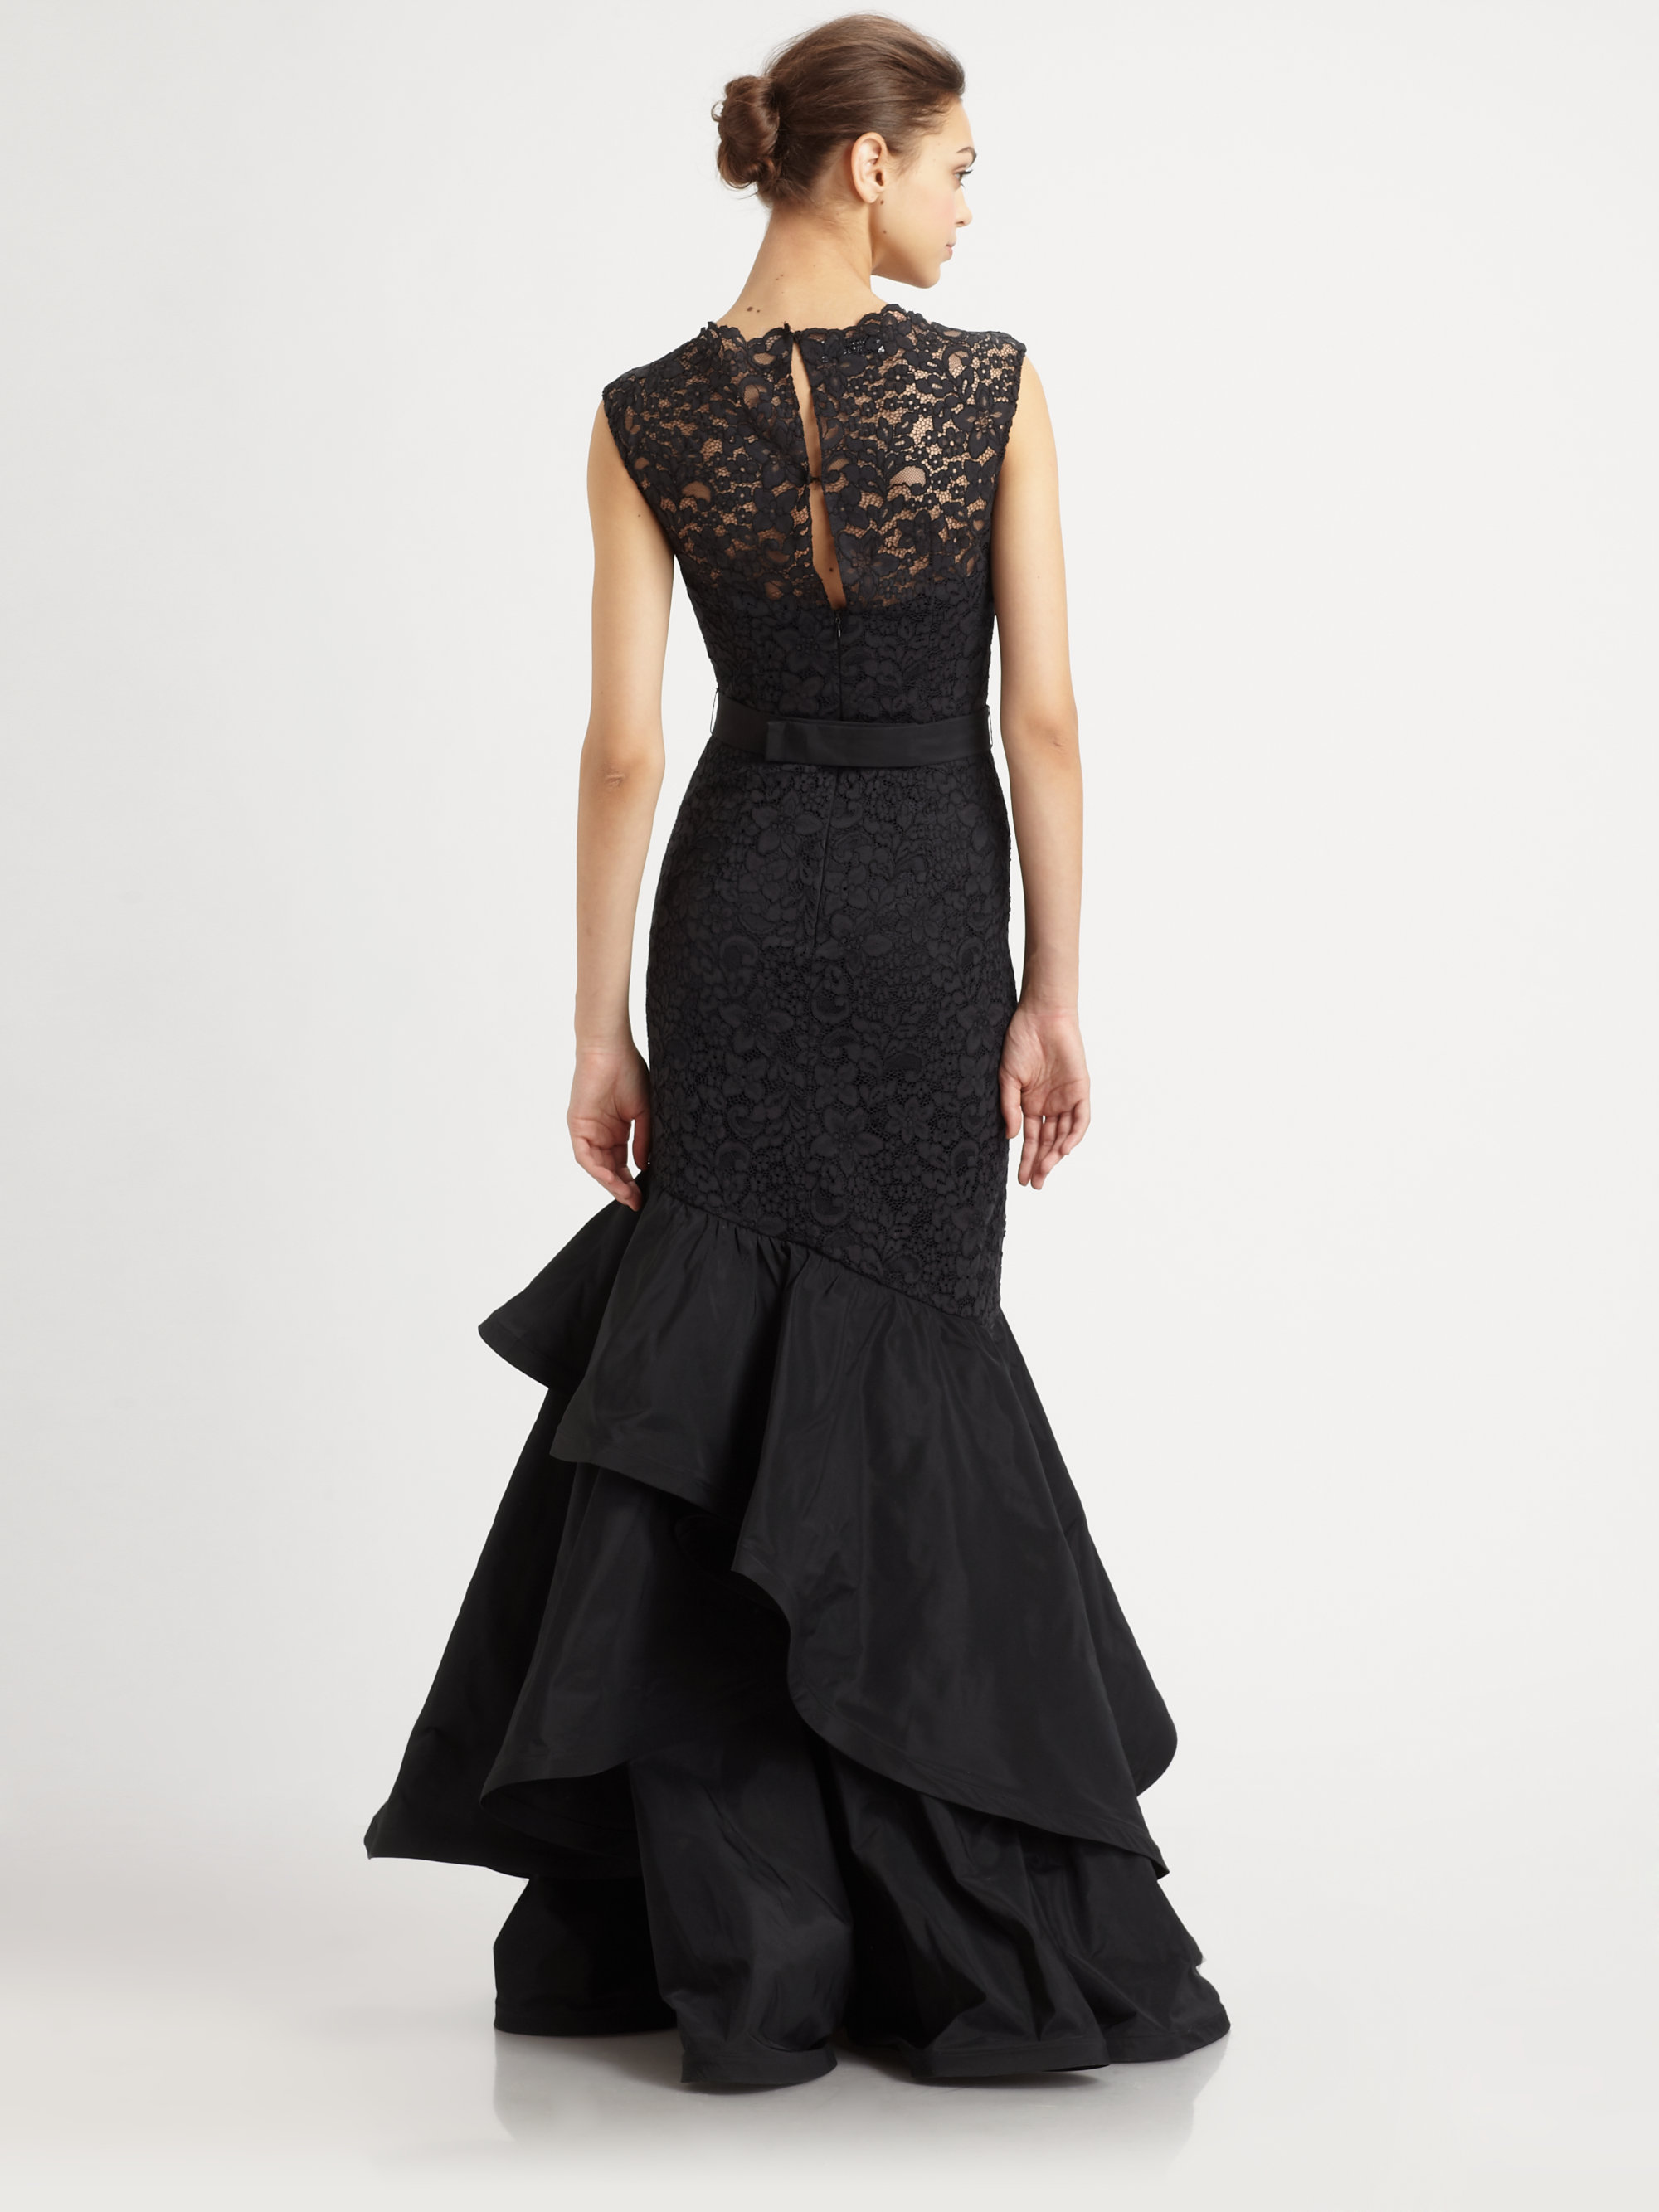 Teri jon Lace-trimmed Taffeta Gown in Black | Lyst